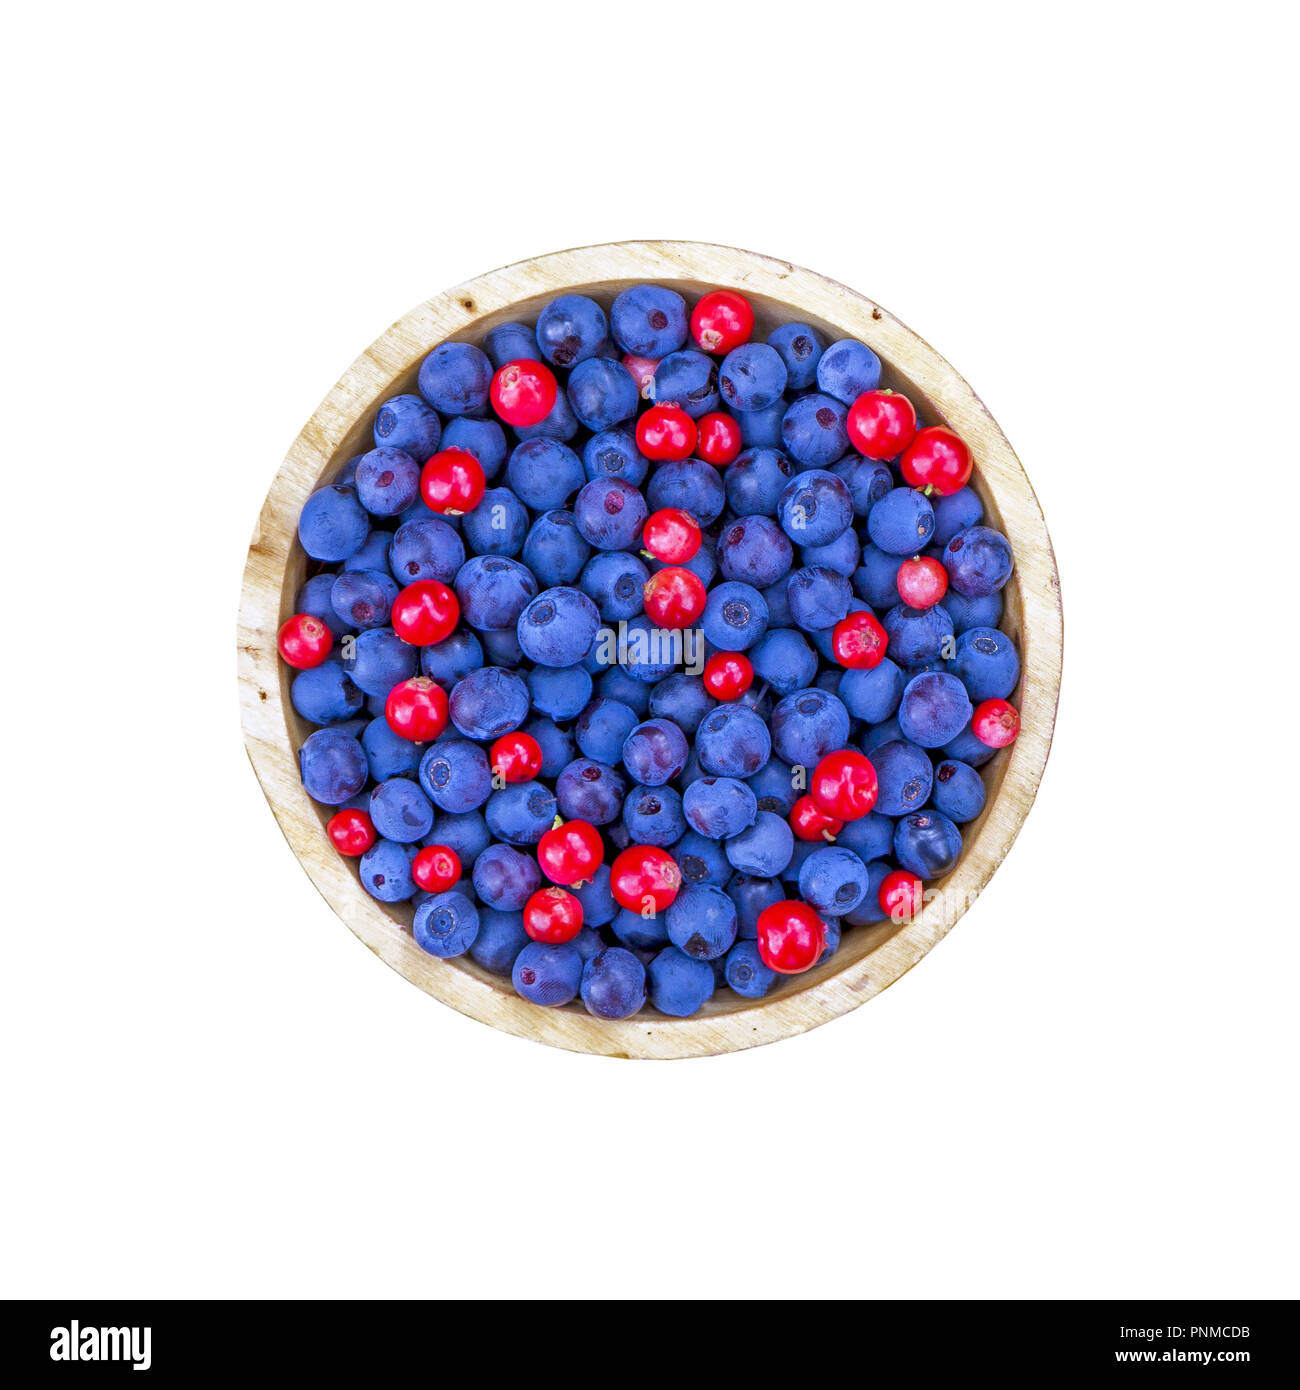 Bowl of blueberries and cranberries isolated on white background, flat lay single object - Stock Image